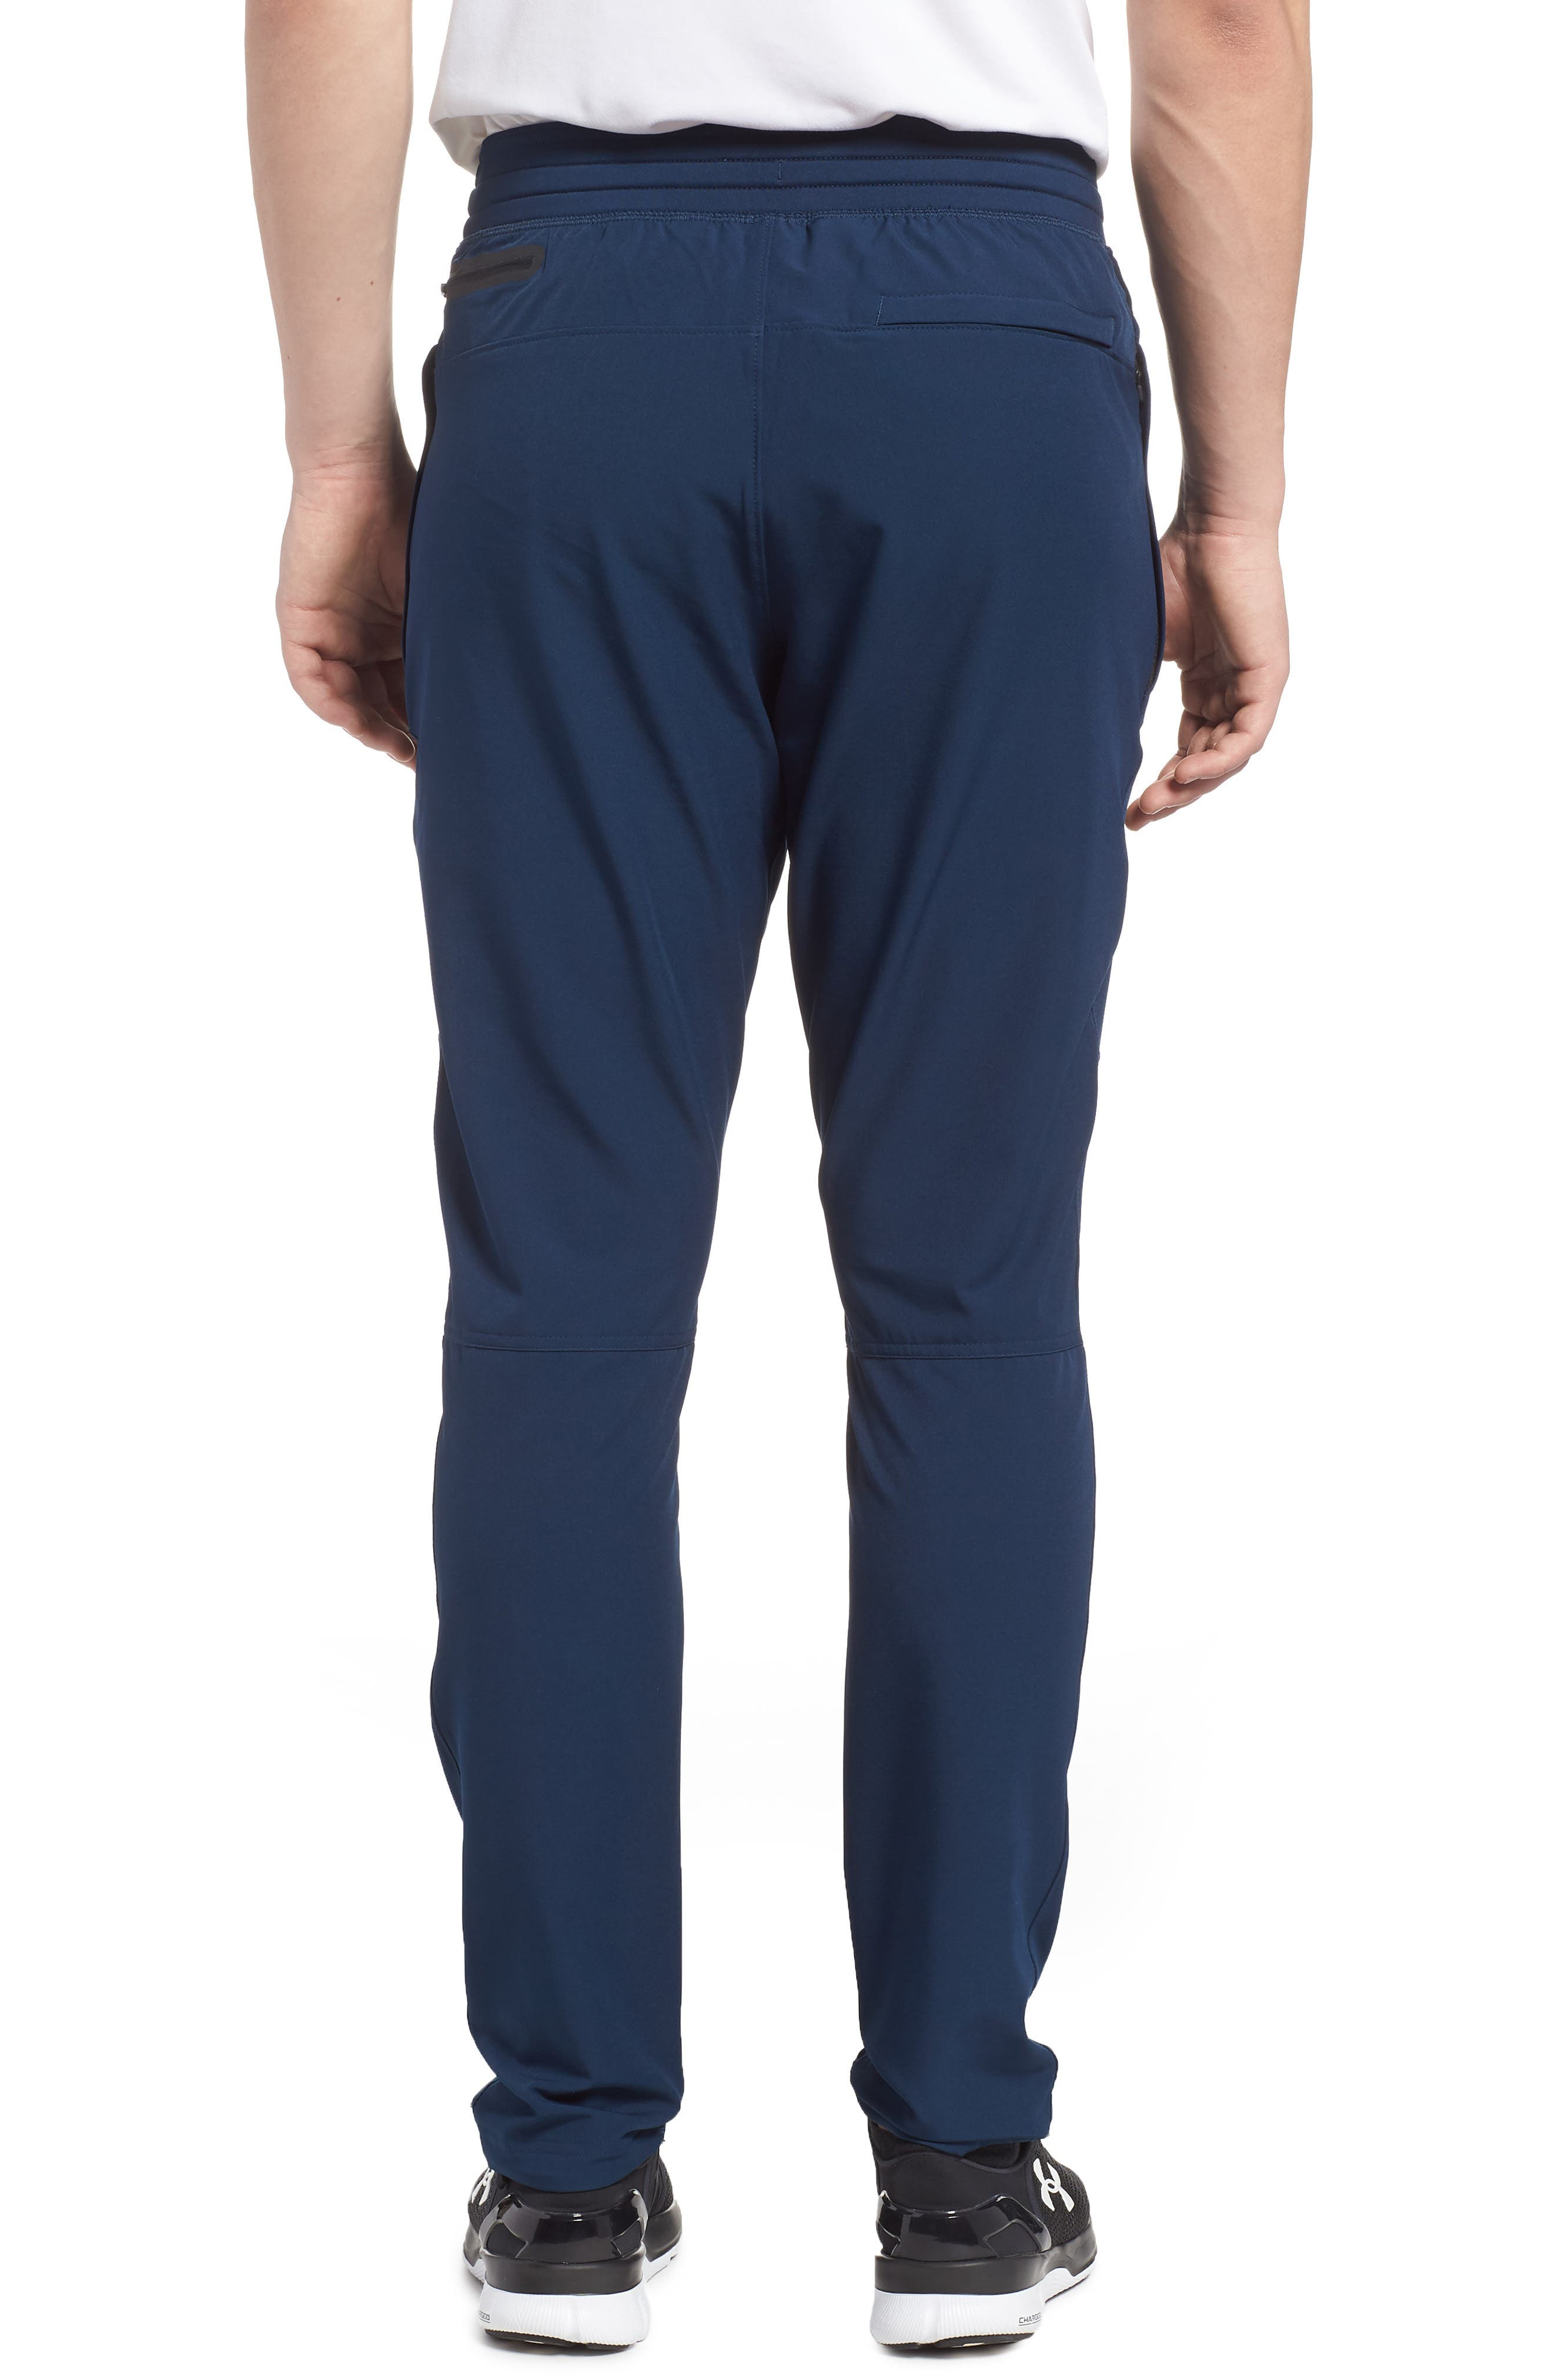 Fitted Woven Training Pants,                             Alternate thumbnail 12, color,